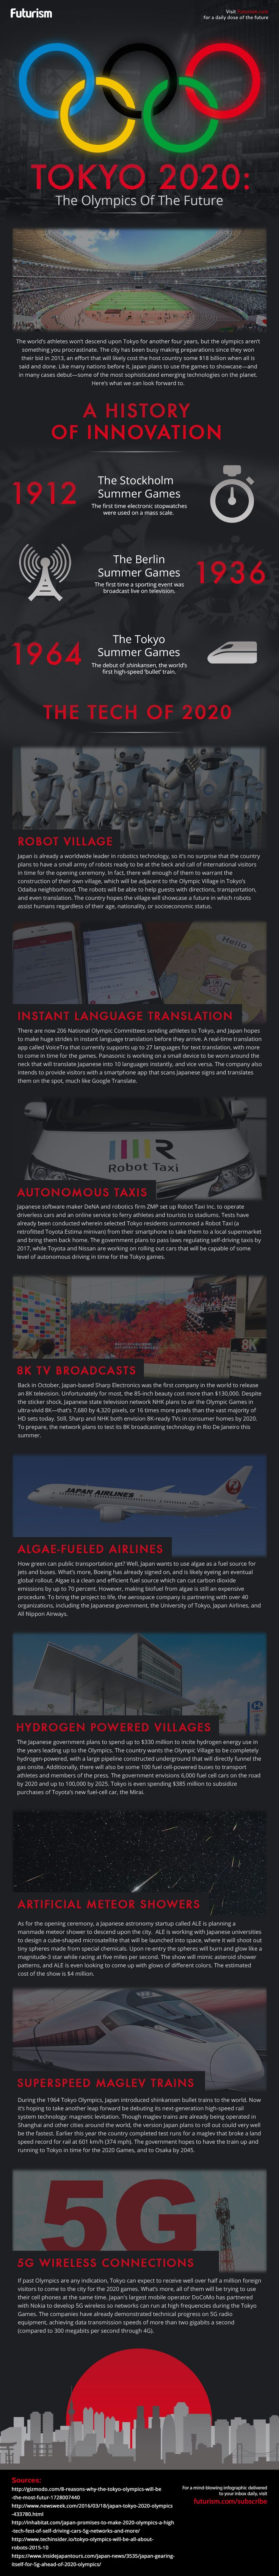 Tokyo Olympics 2020: The Olympics of Future  (Infographic) — The torch has been passed to Tokyo for the 2020 Games. It promises to be the most futuristic Olympics yet, with plans for autonomous taxis, instant language translation, artificial meteor showers, and more. — https://futurism.com/images/tokyo-2020-olympics-future/